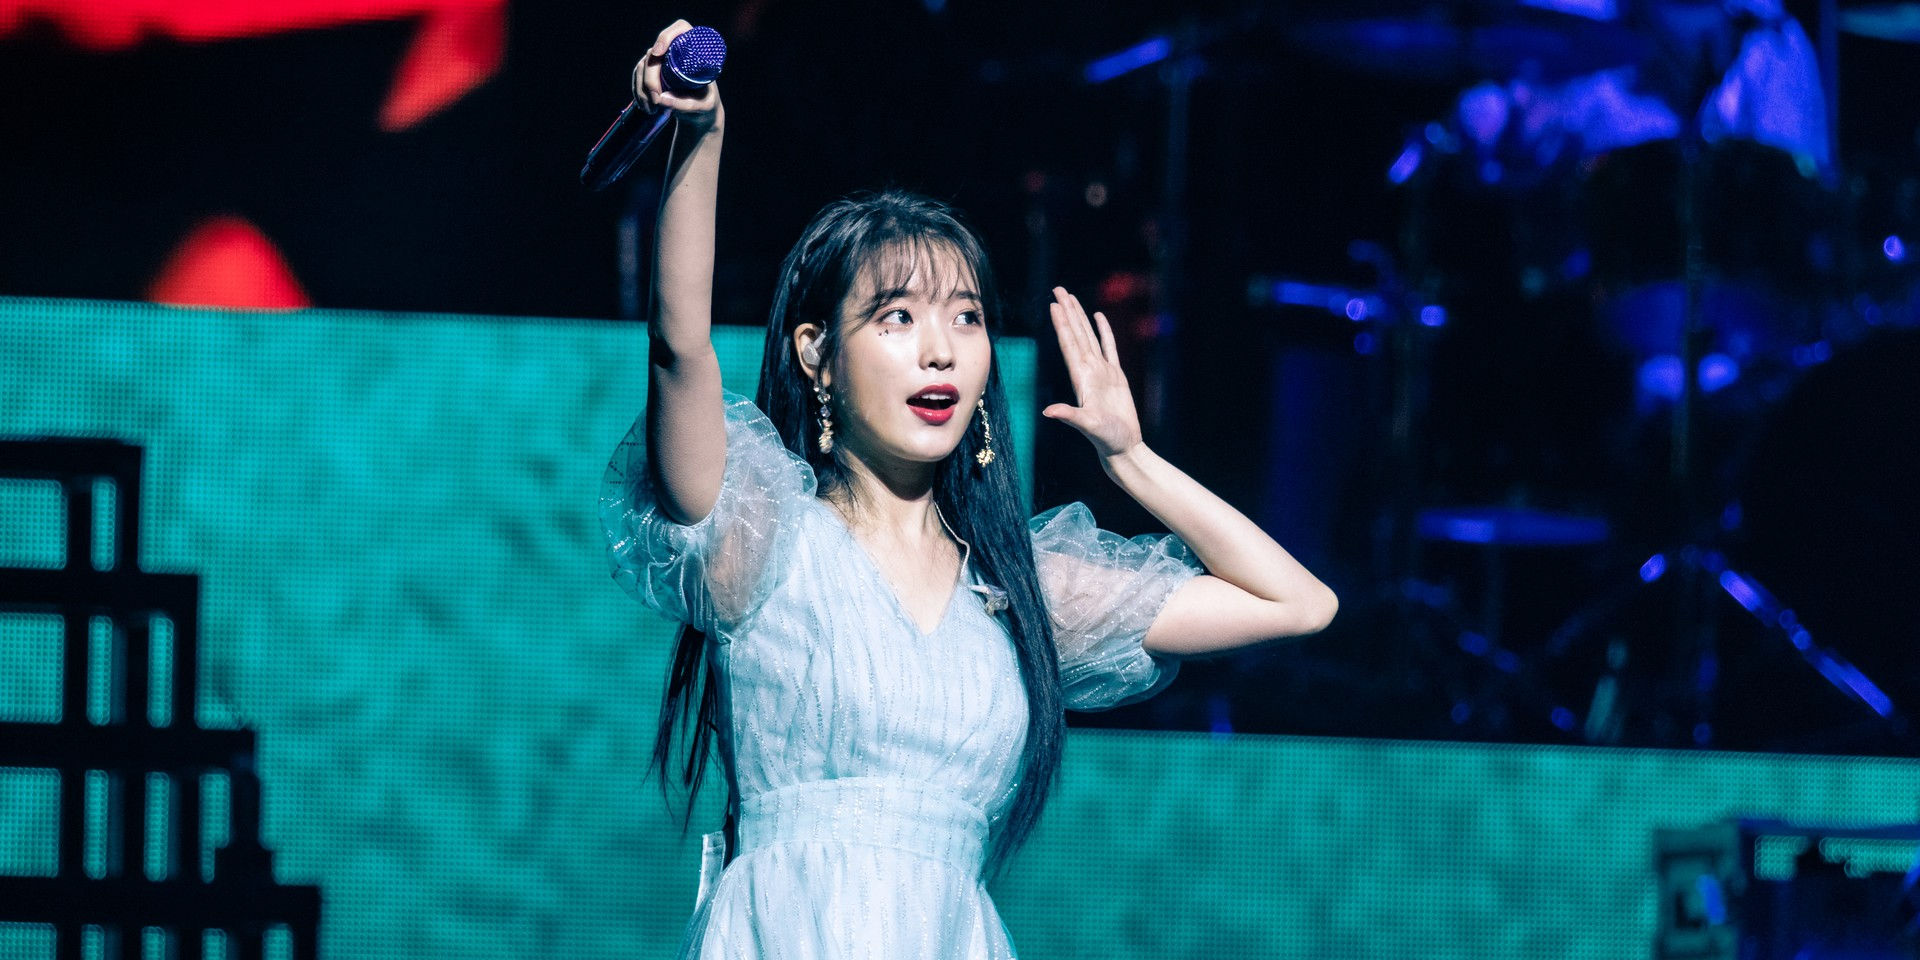 IU displays a special connection with fans at Singapore show – gig report